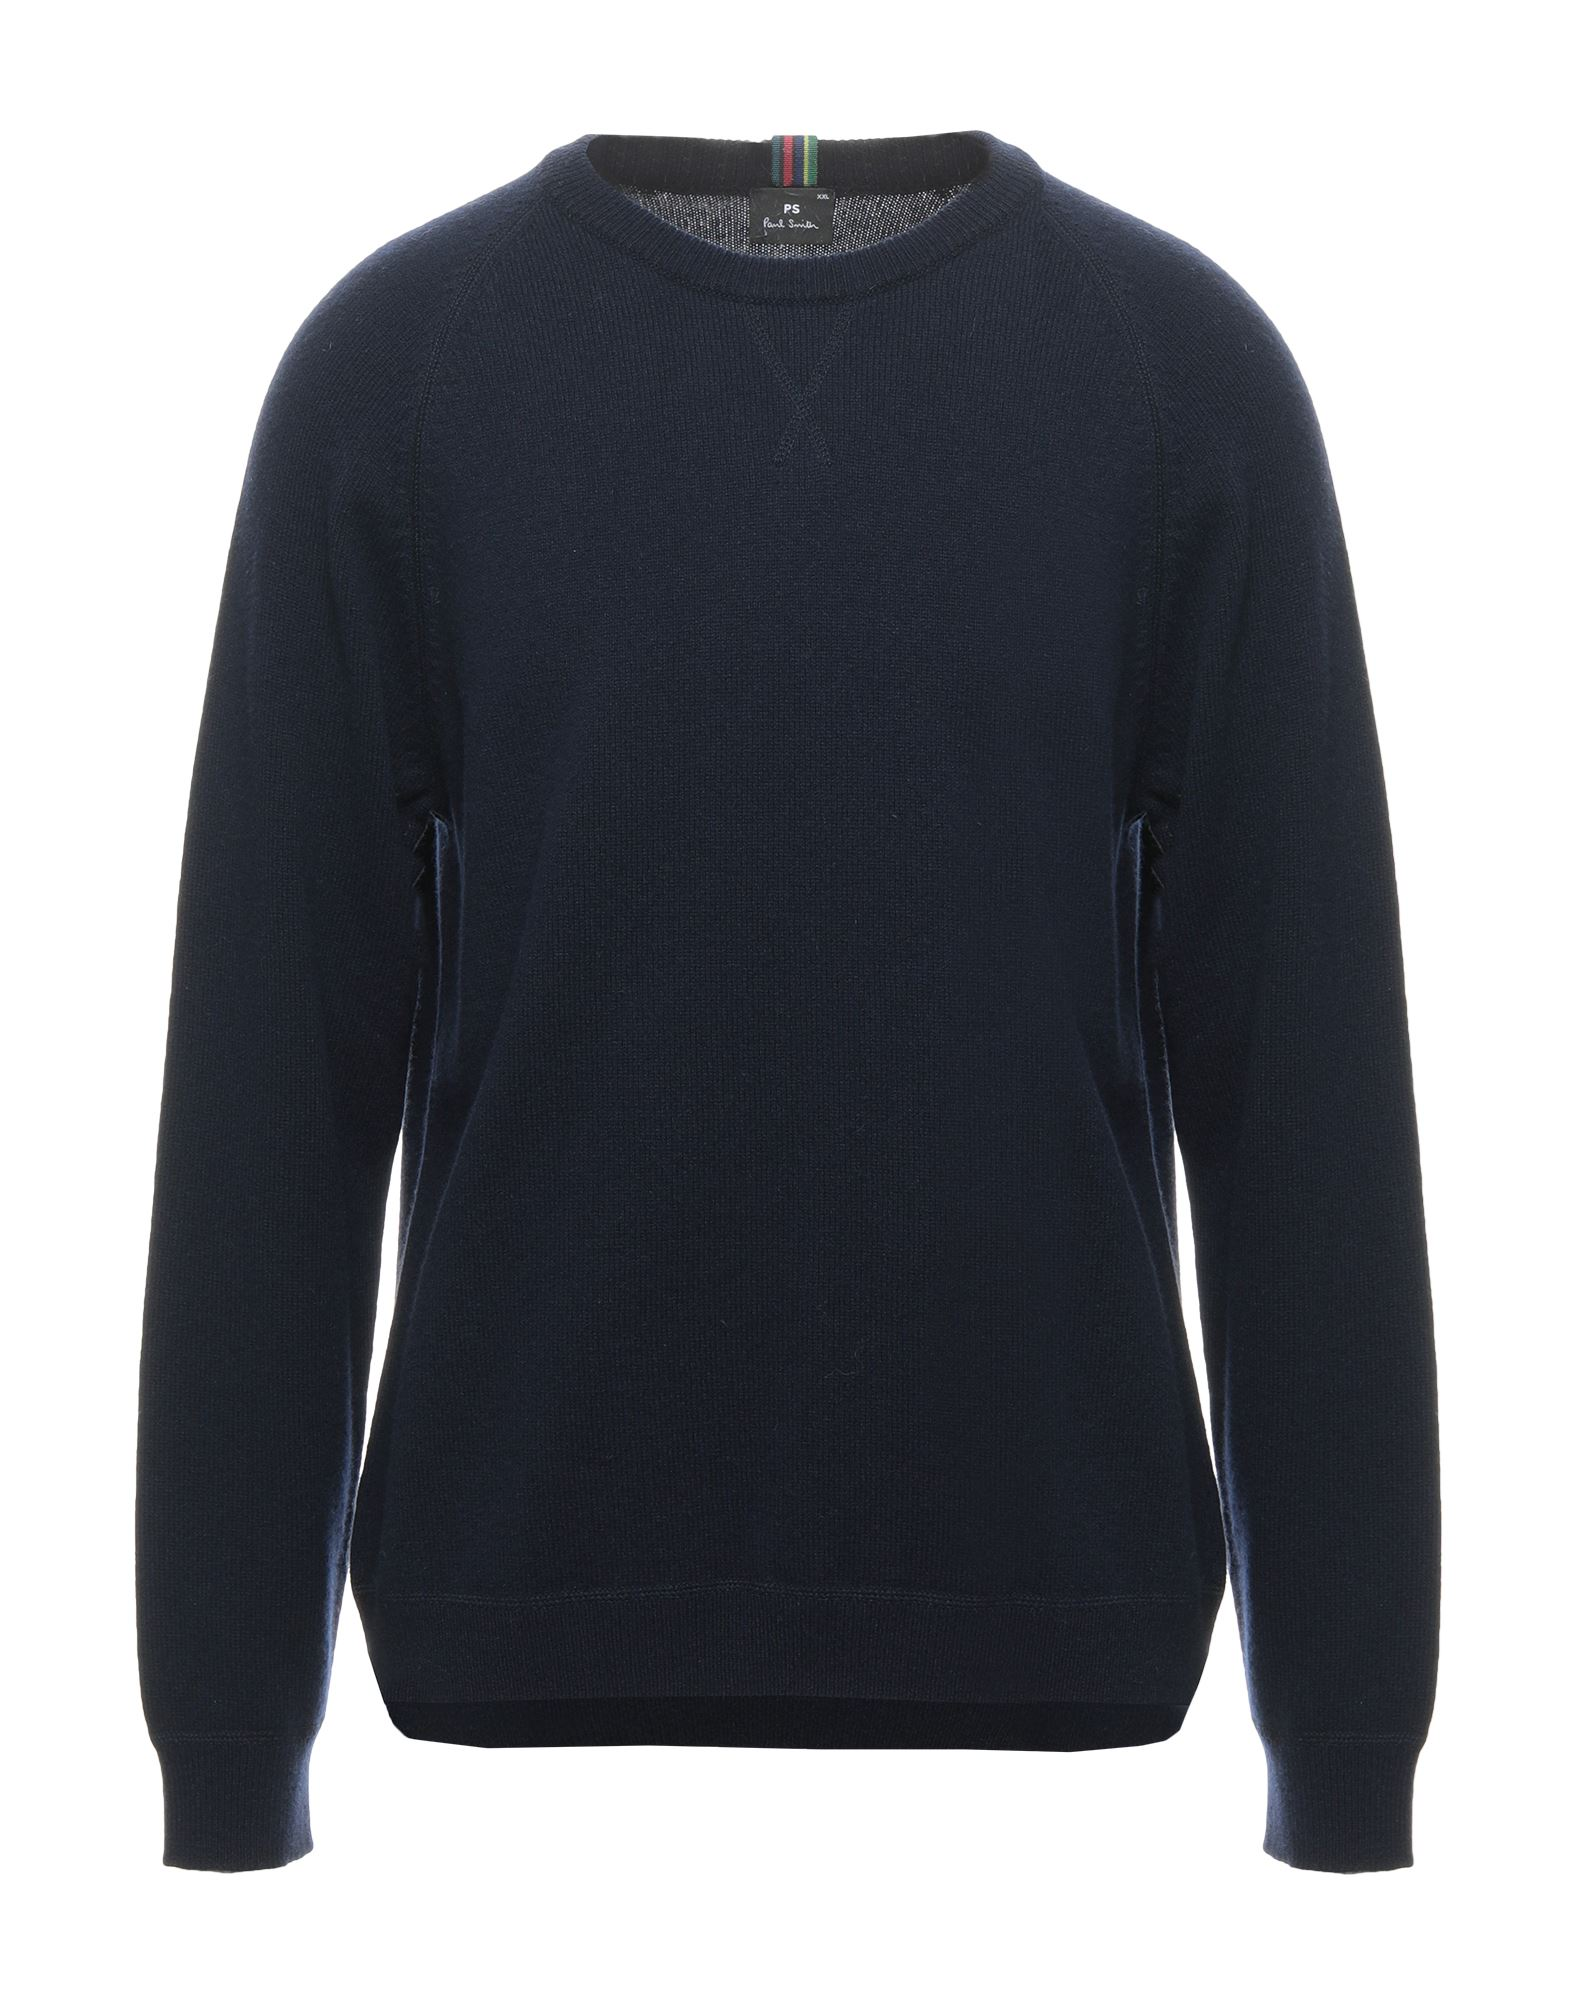 PS PAUL SMITH Sweaters - Item 14125675